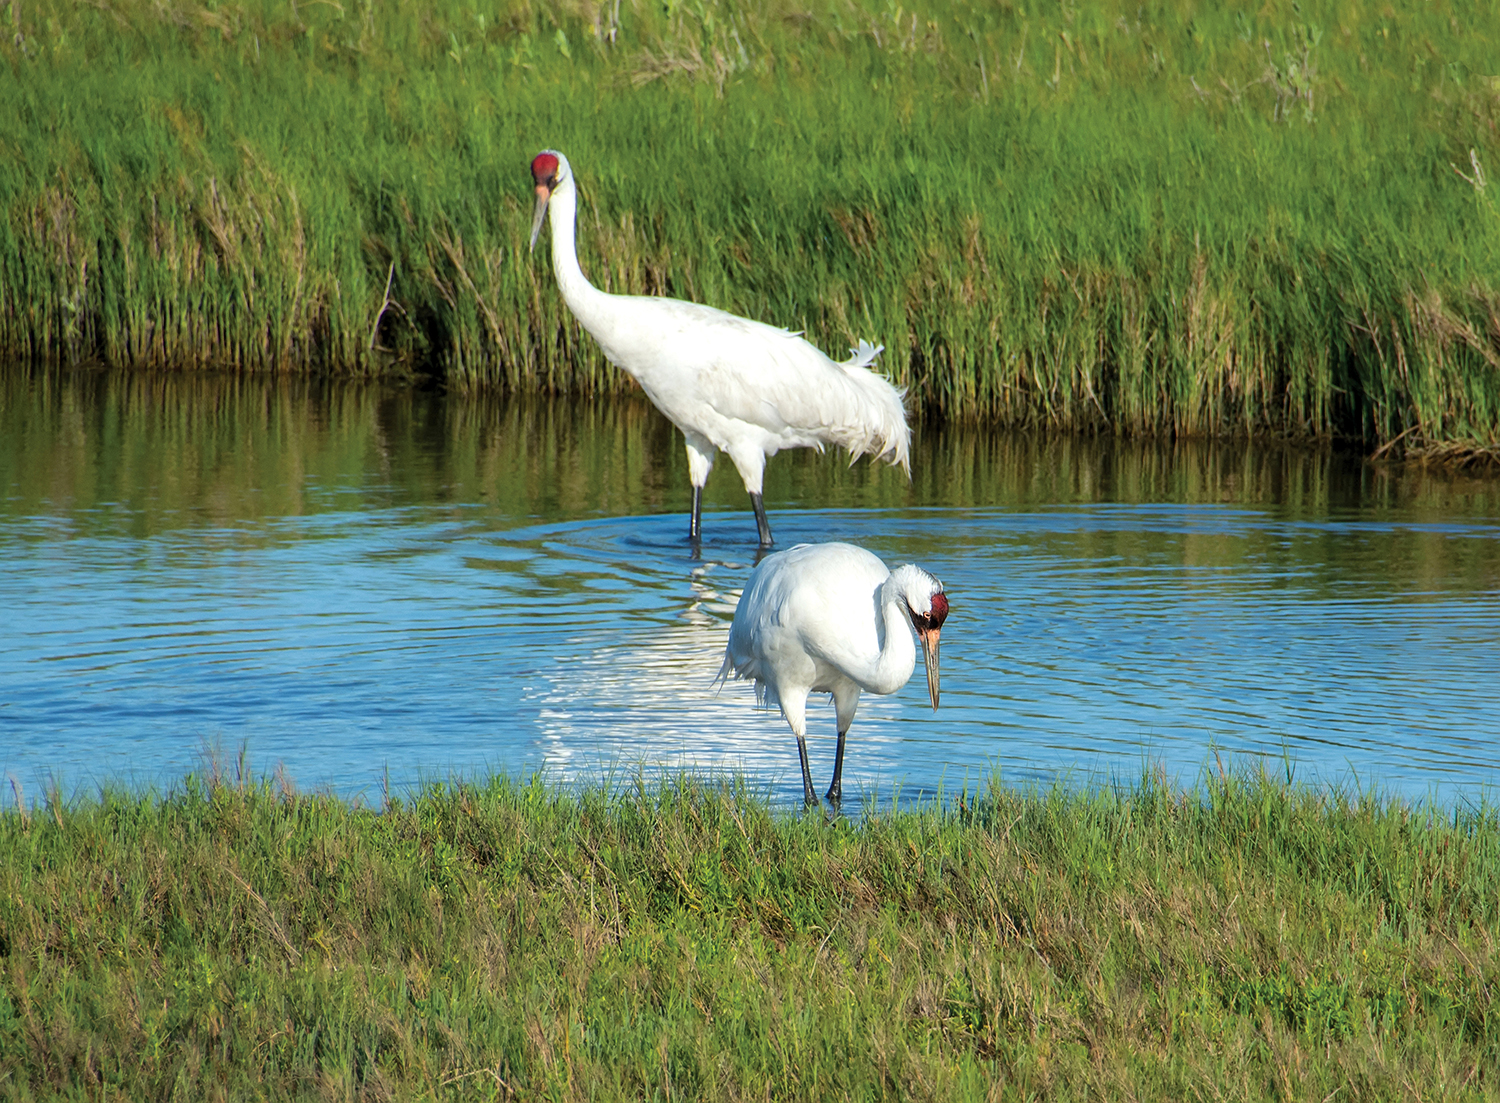 Whooping cranes stand in the marsh.